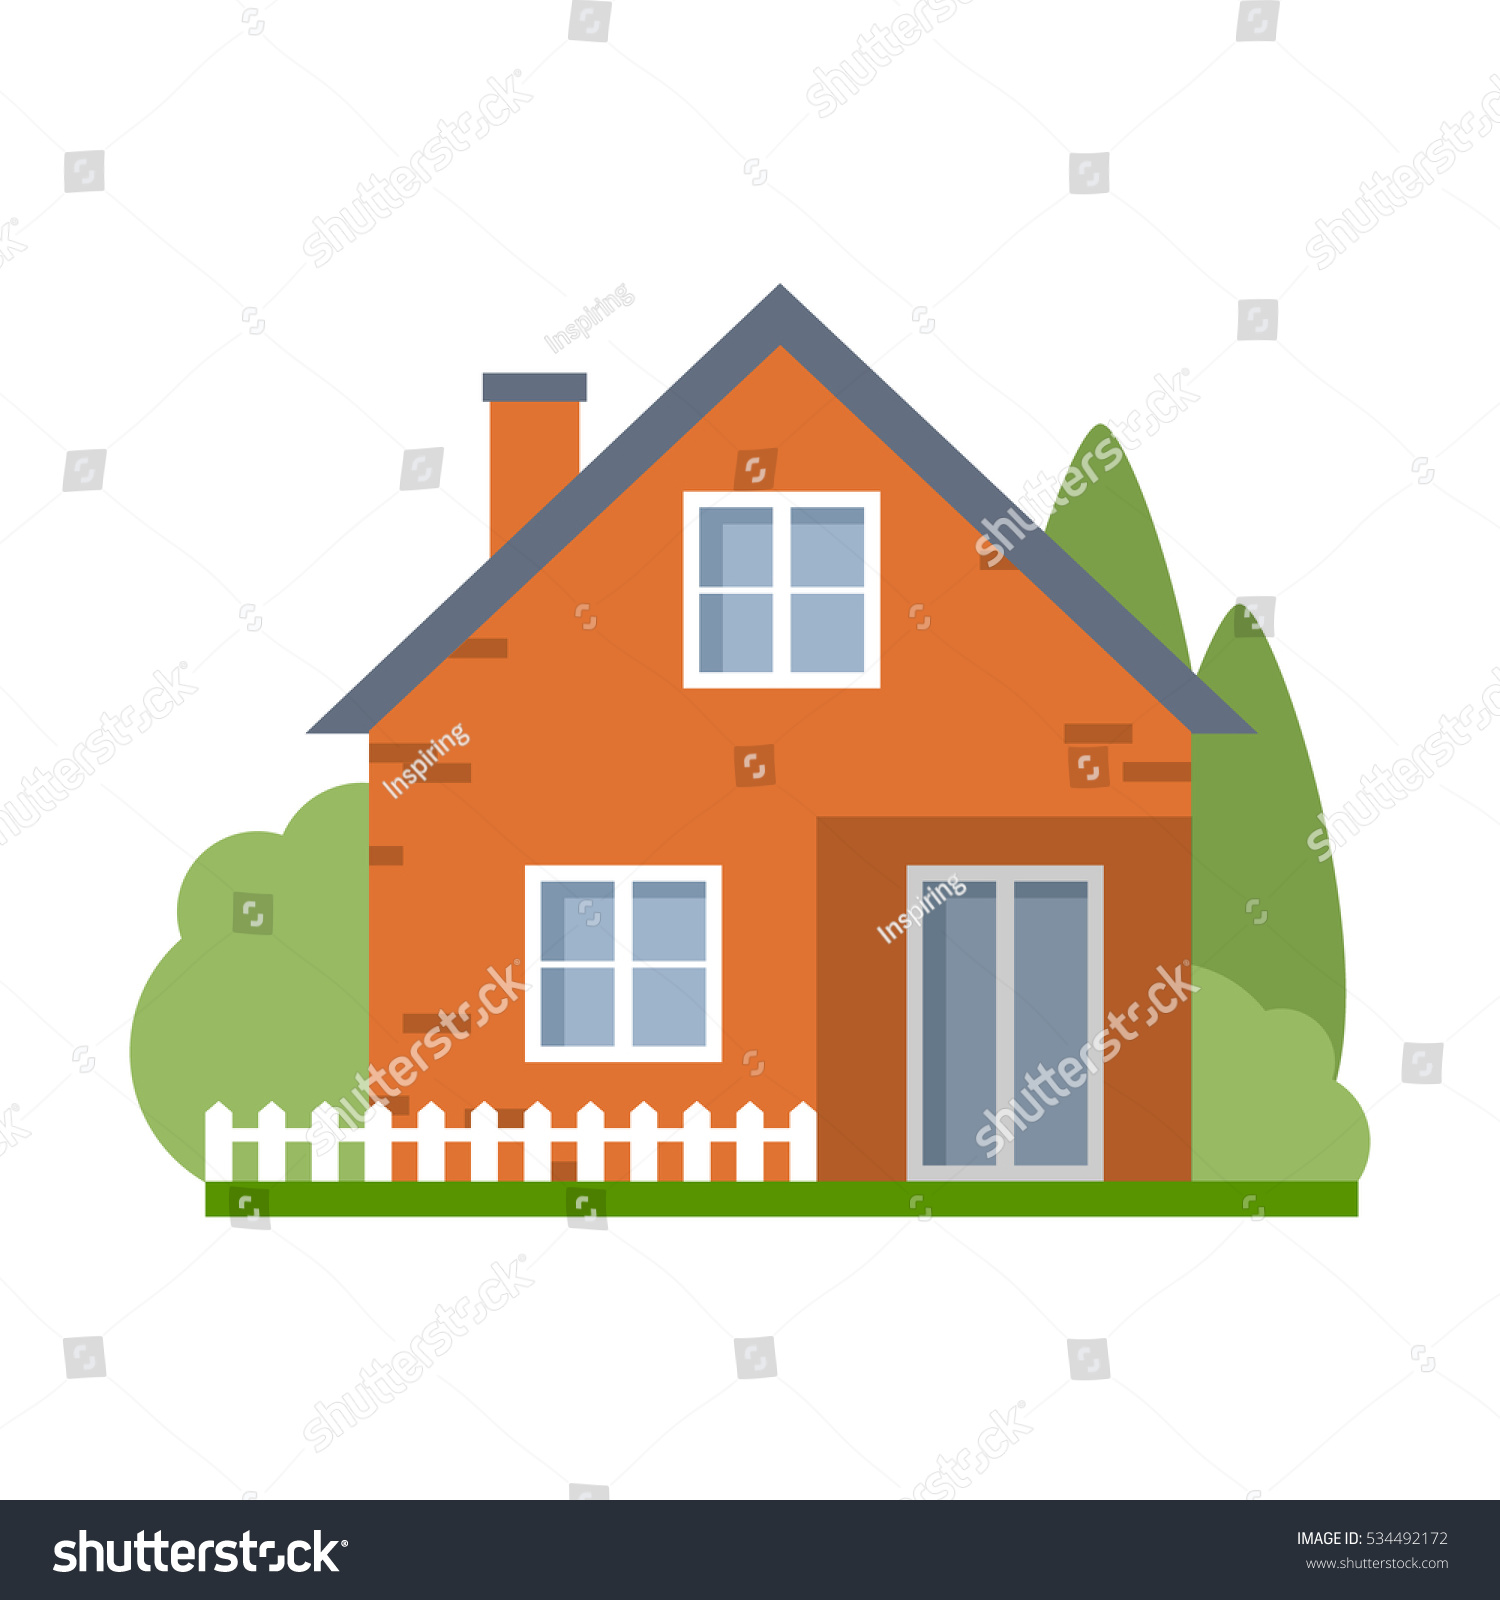 Online image photo editor shutterstock editor for Picture of house